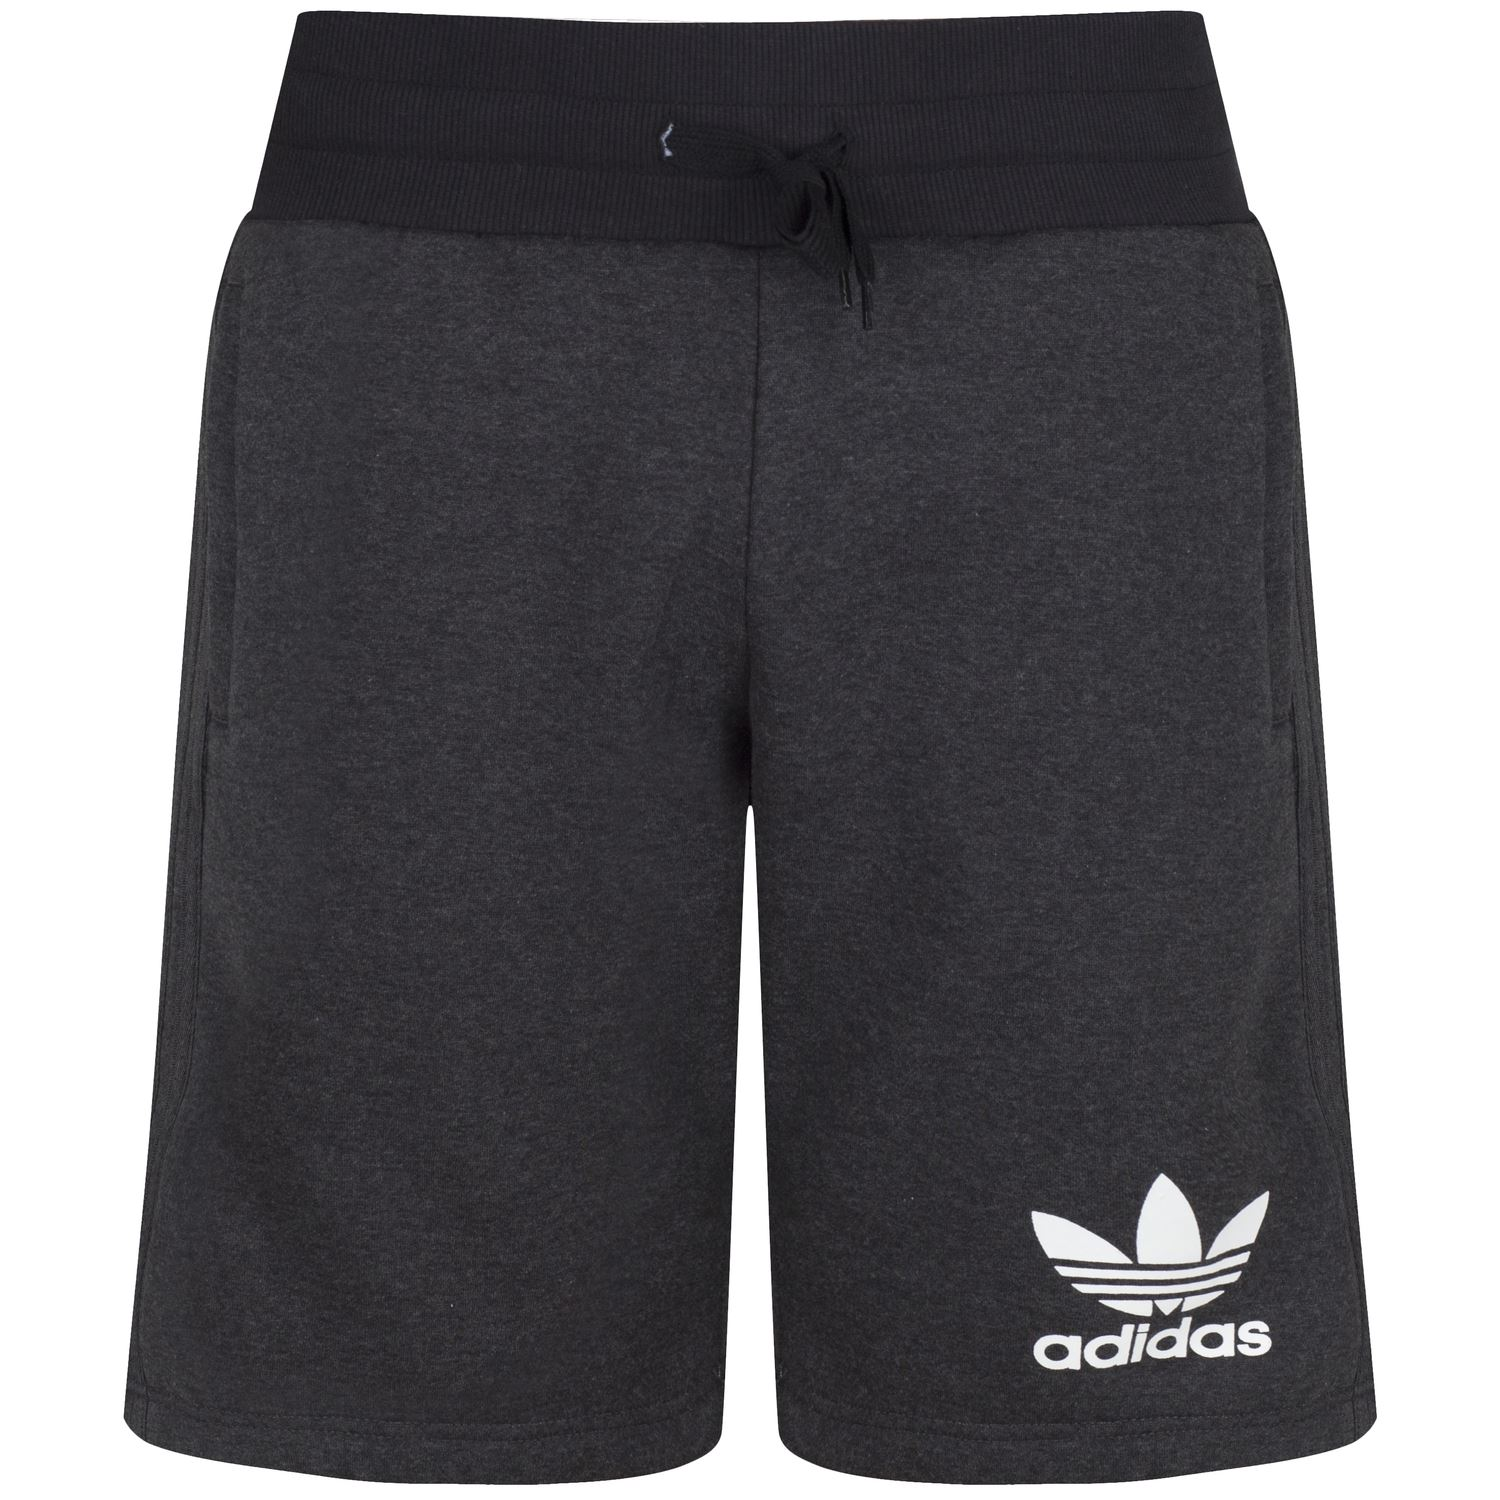 bermudas adidas originals